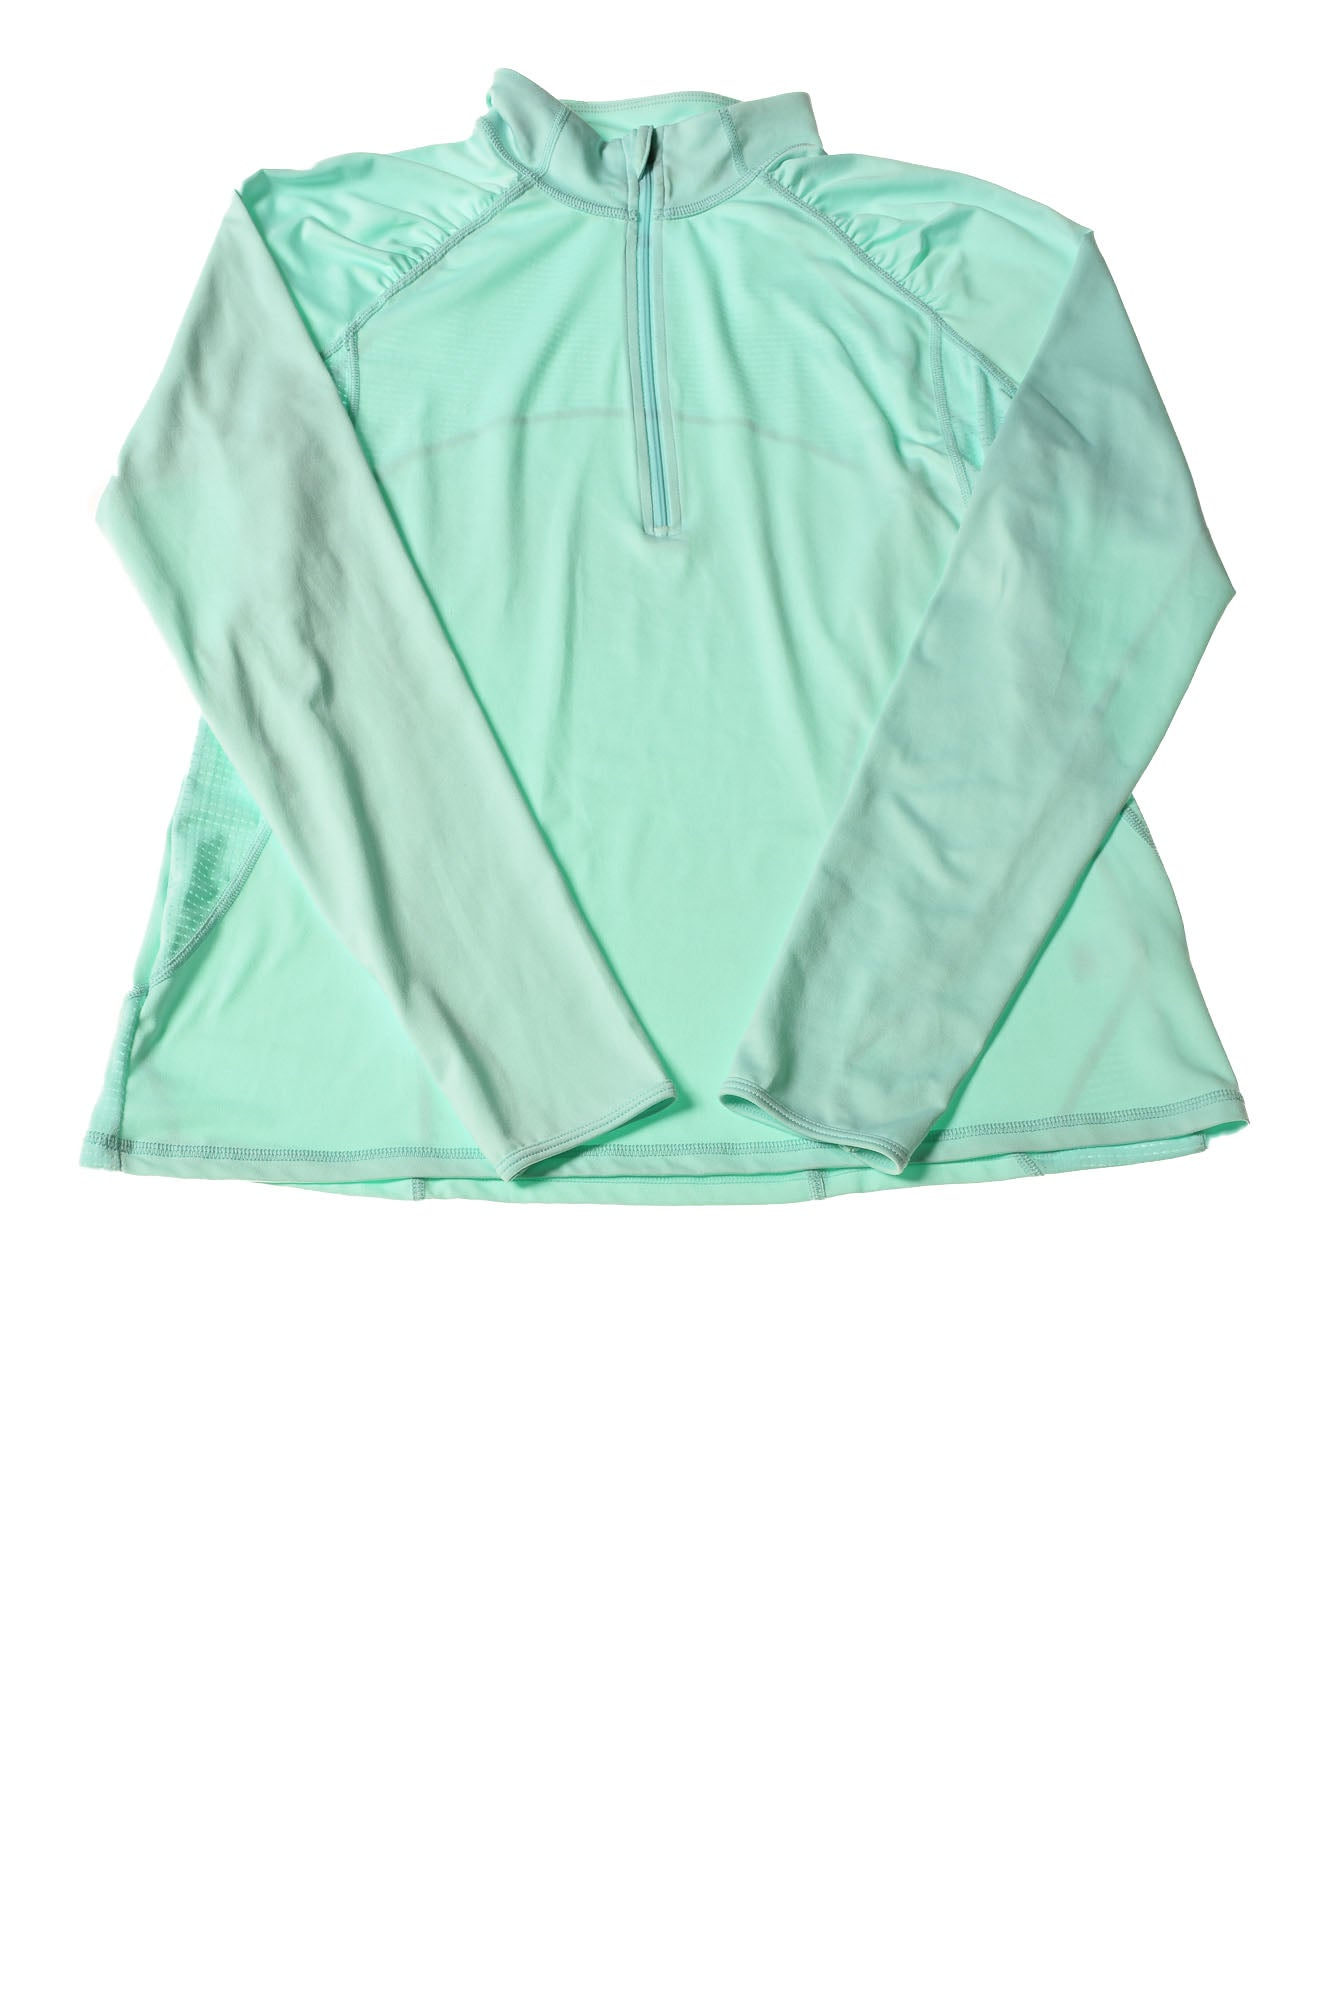 35502c58a6872 USED Xersion Women's Top Large Aqua - Village Discount Outlet